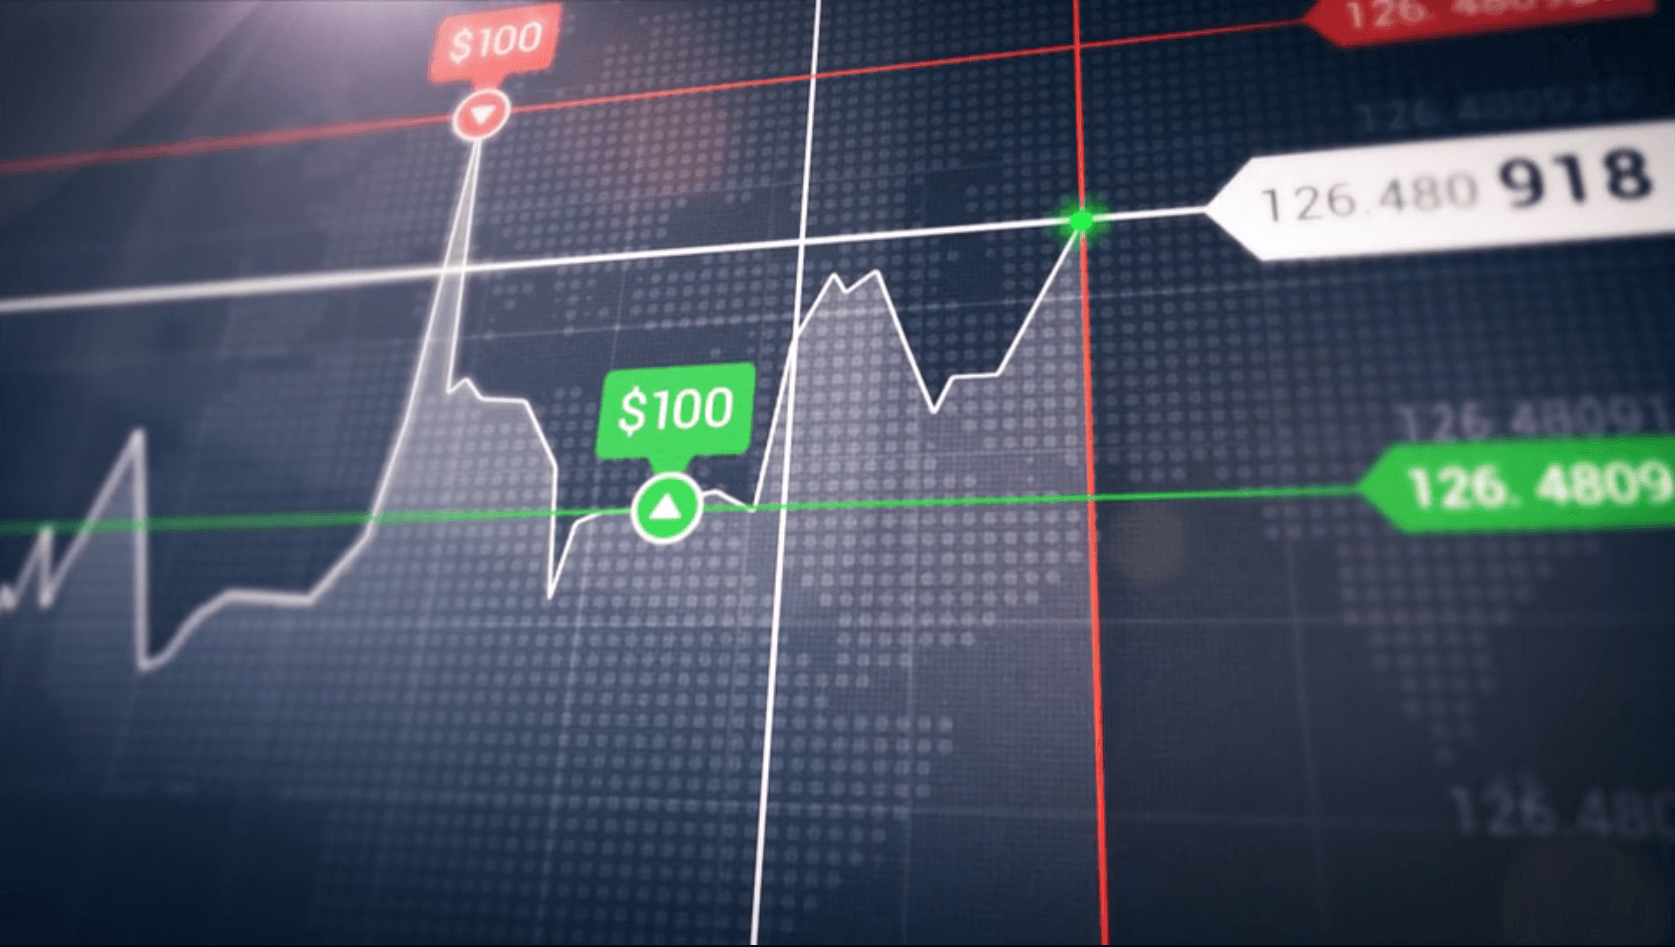 How to trade successfully on binary options